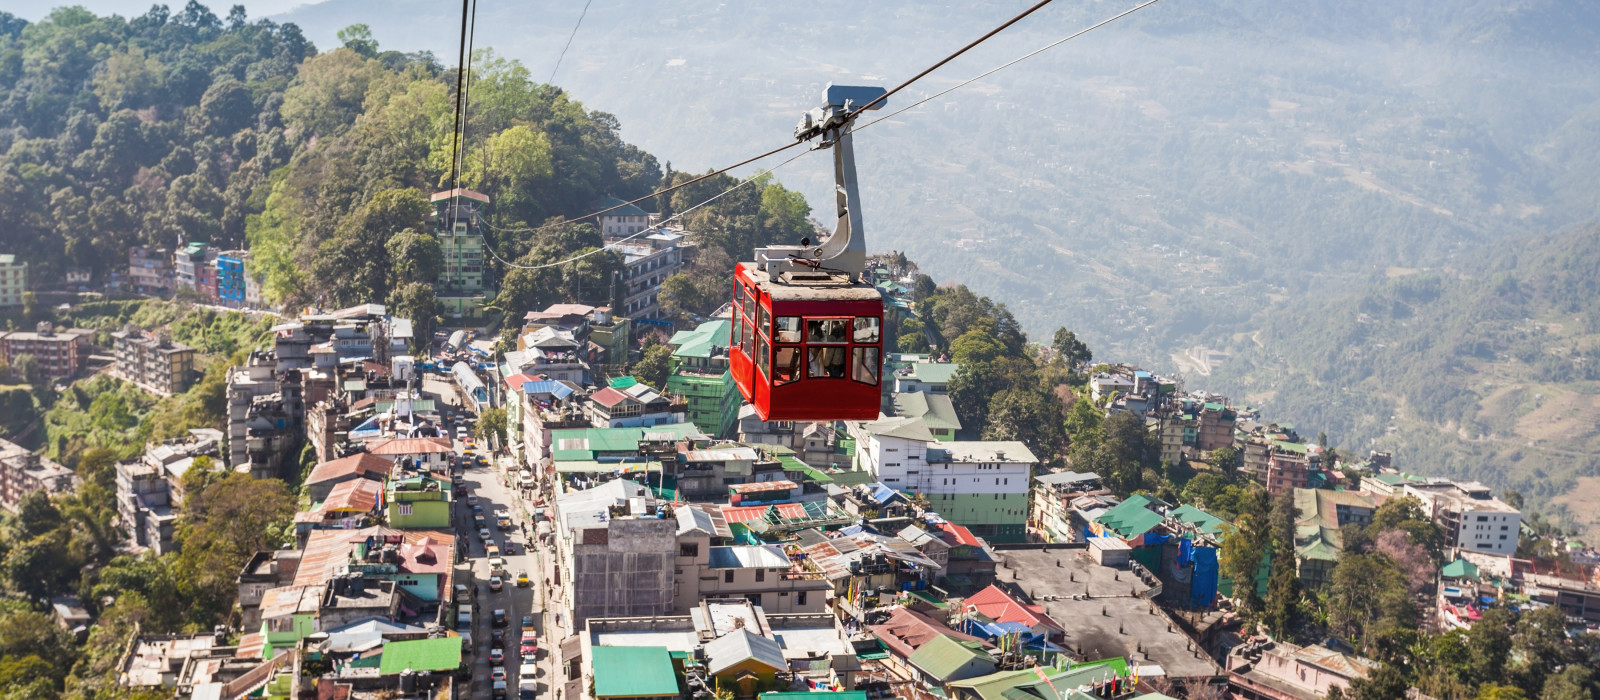 Bergbahn in Gangtok, Indien